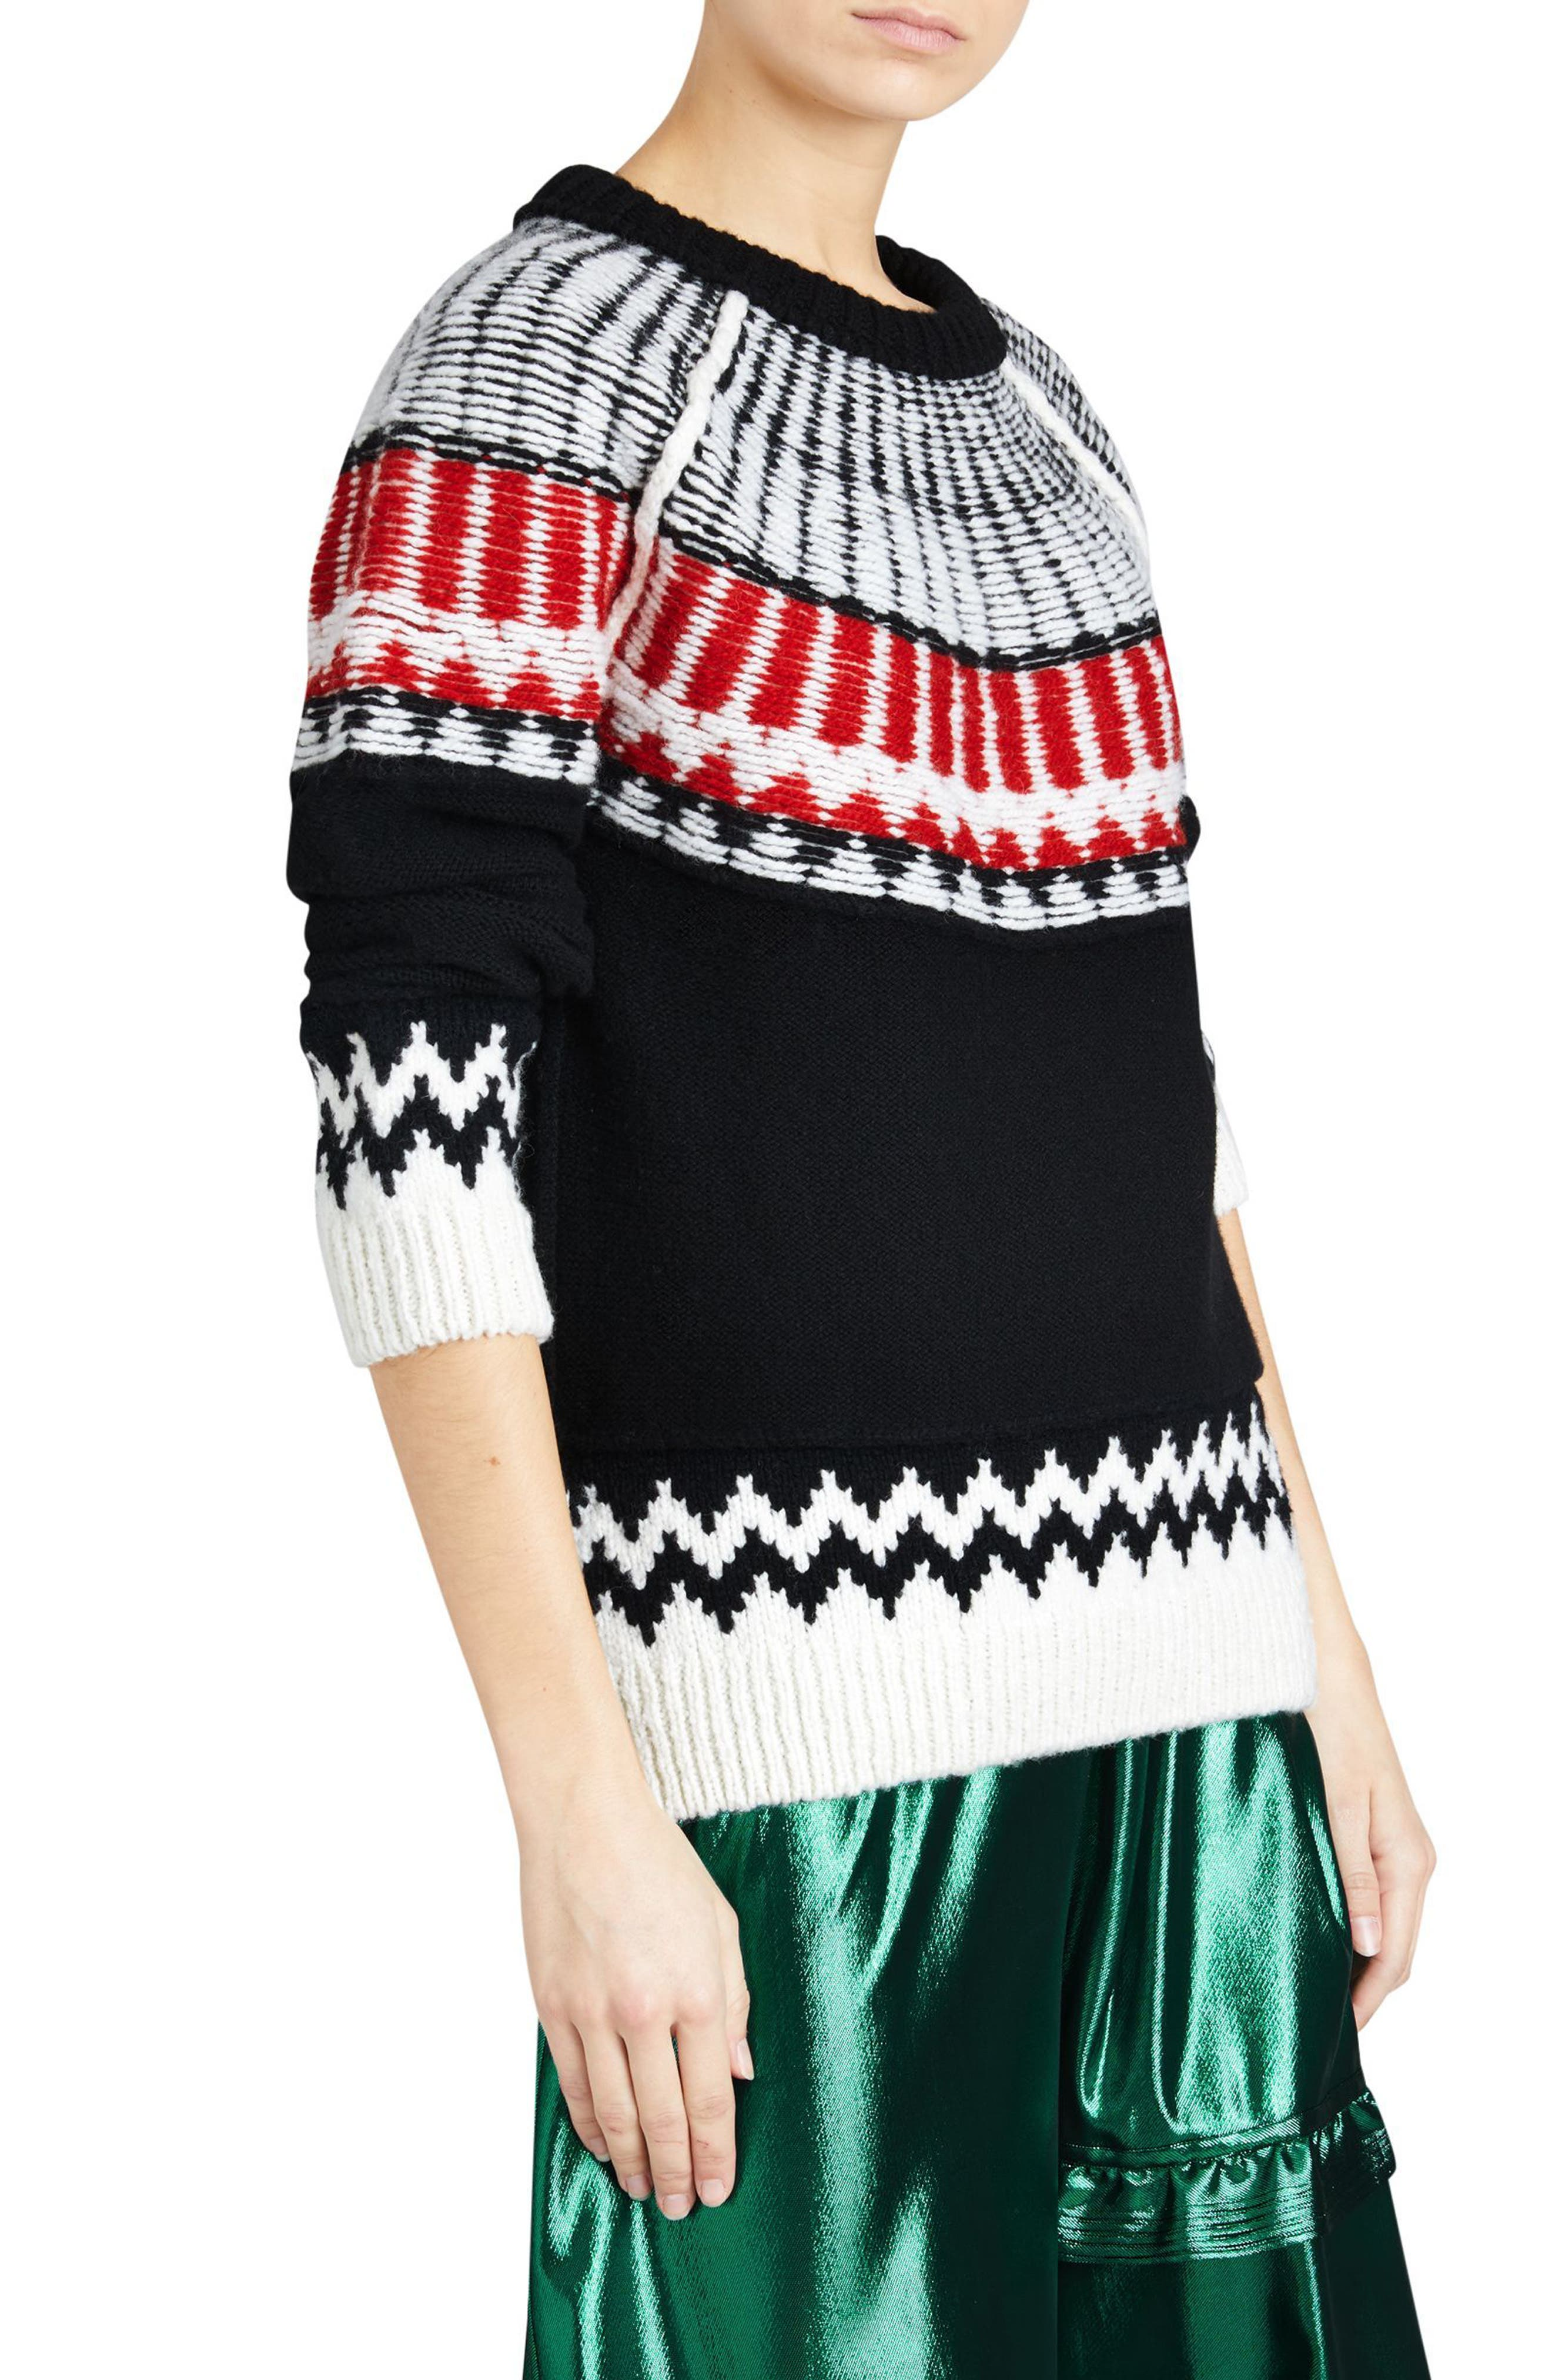 Trycroft Fair Isle Wool Blend Sweater,                             Alternate thumbnail 3, color,                             Black/ Military Red